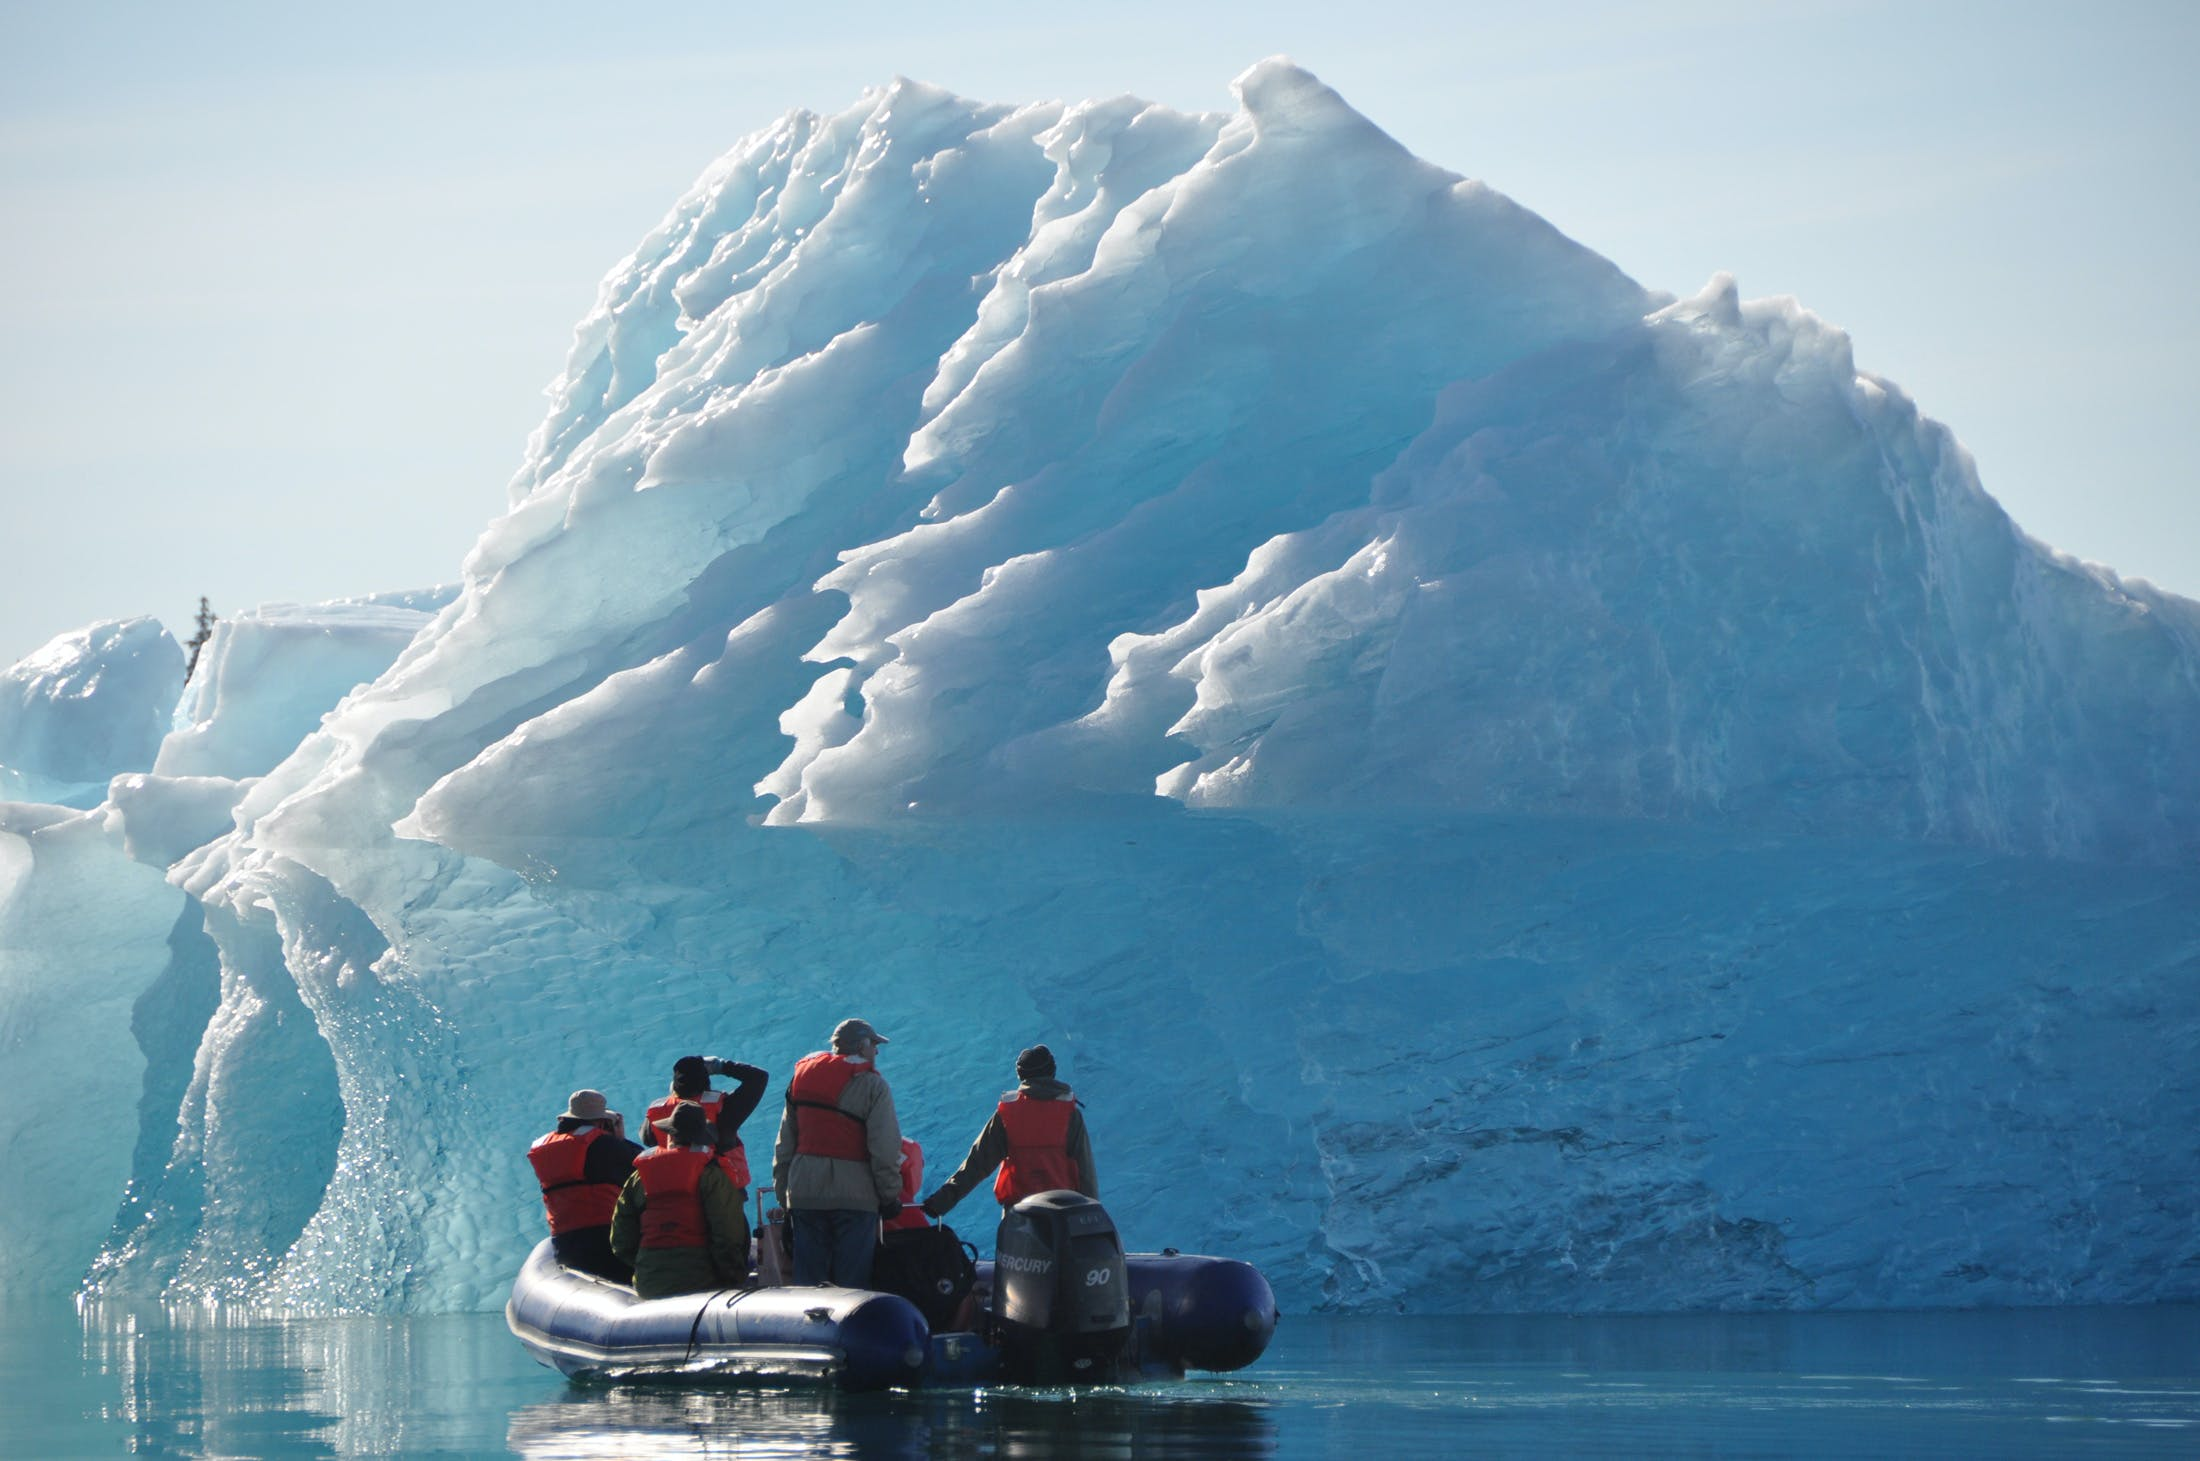 Zodiac boats will transport you to the most rugged and remote parts of every iconic place you visit.